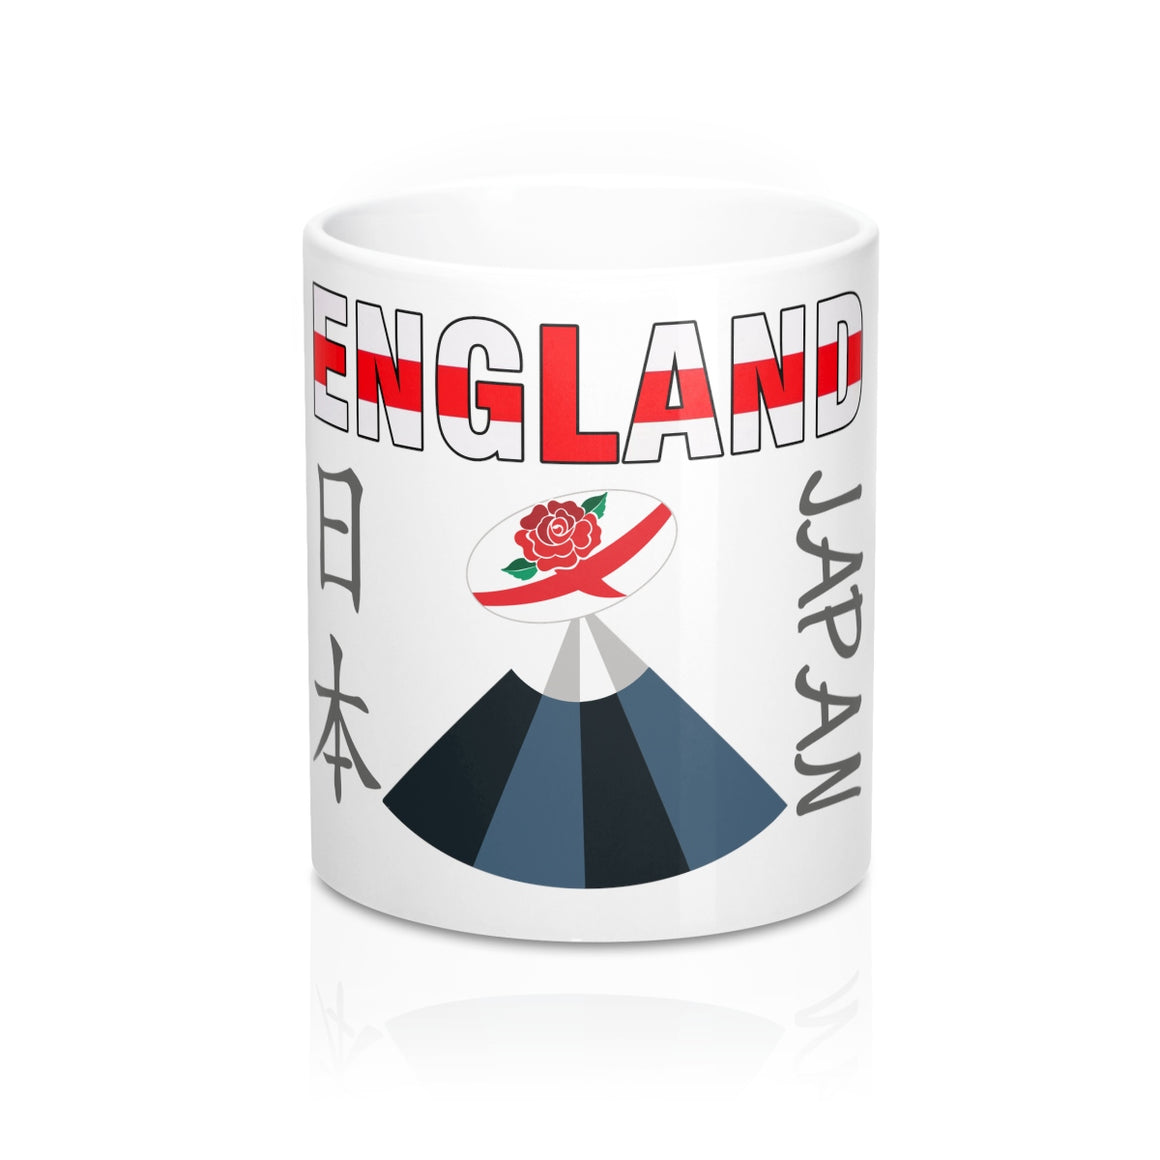 England Rugby World Cup 2019 Japan Mug 11oz White